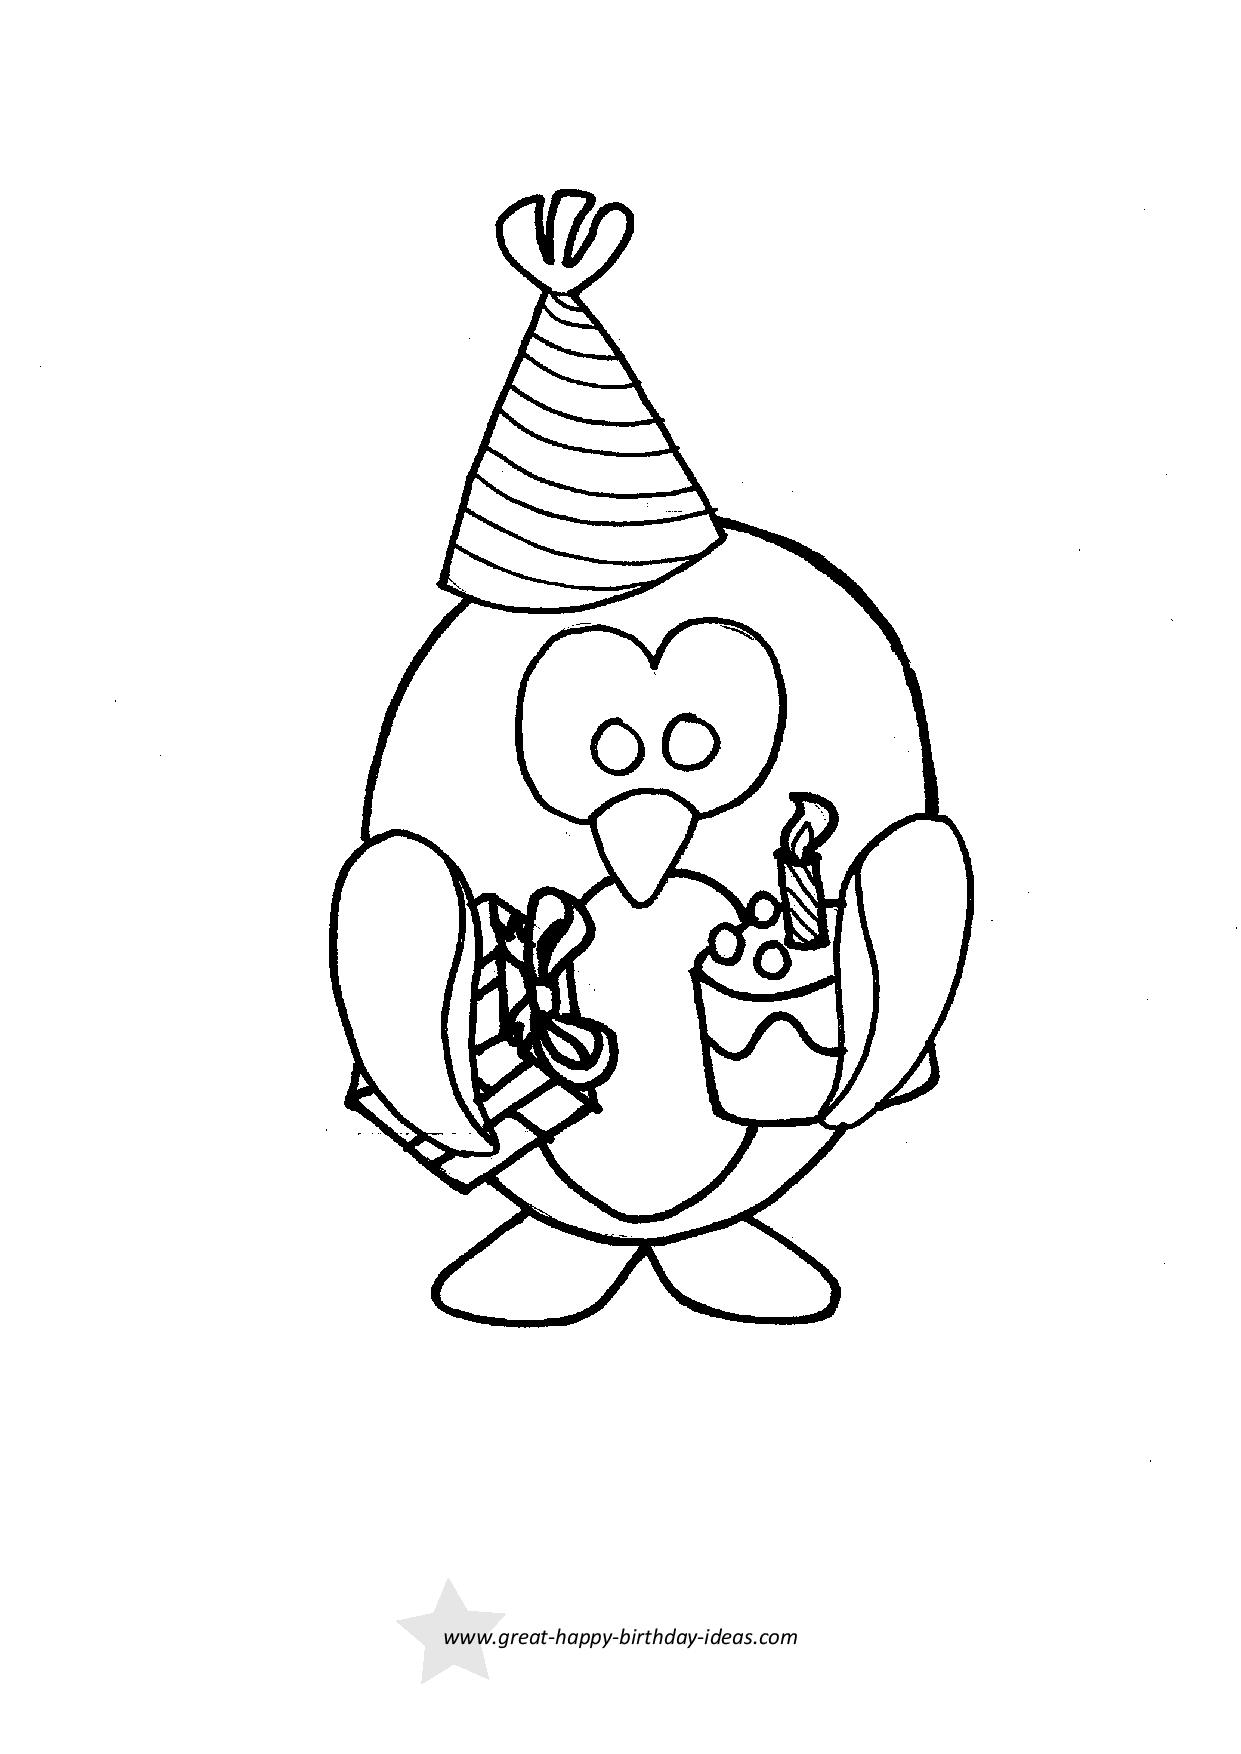 Happy Birthday Penguin Coloring Page